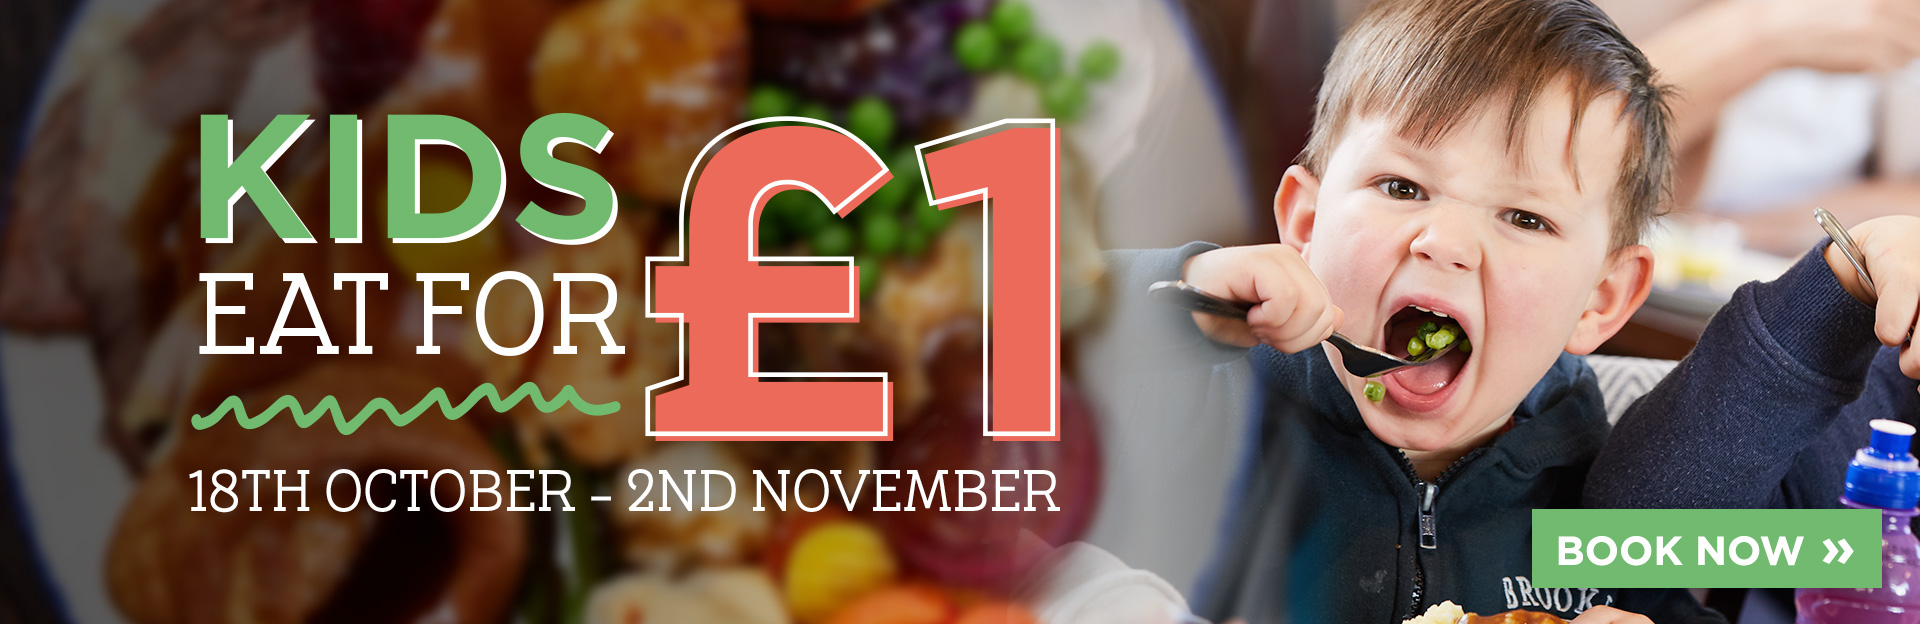 Kids eat for £1 at The Punch Tavern